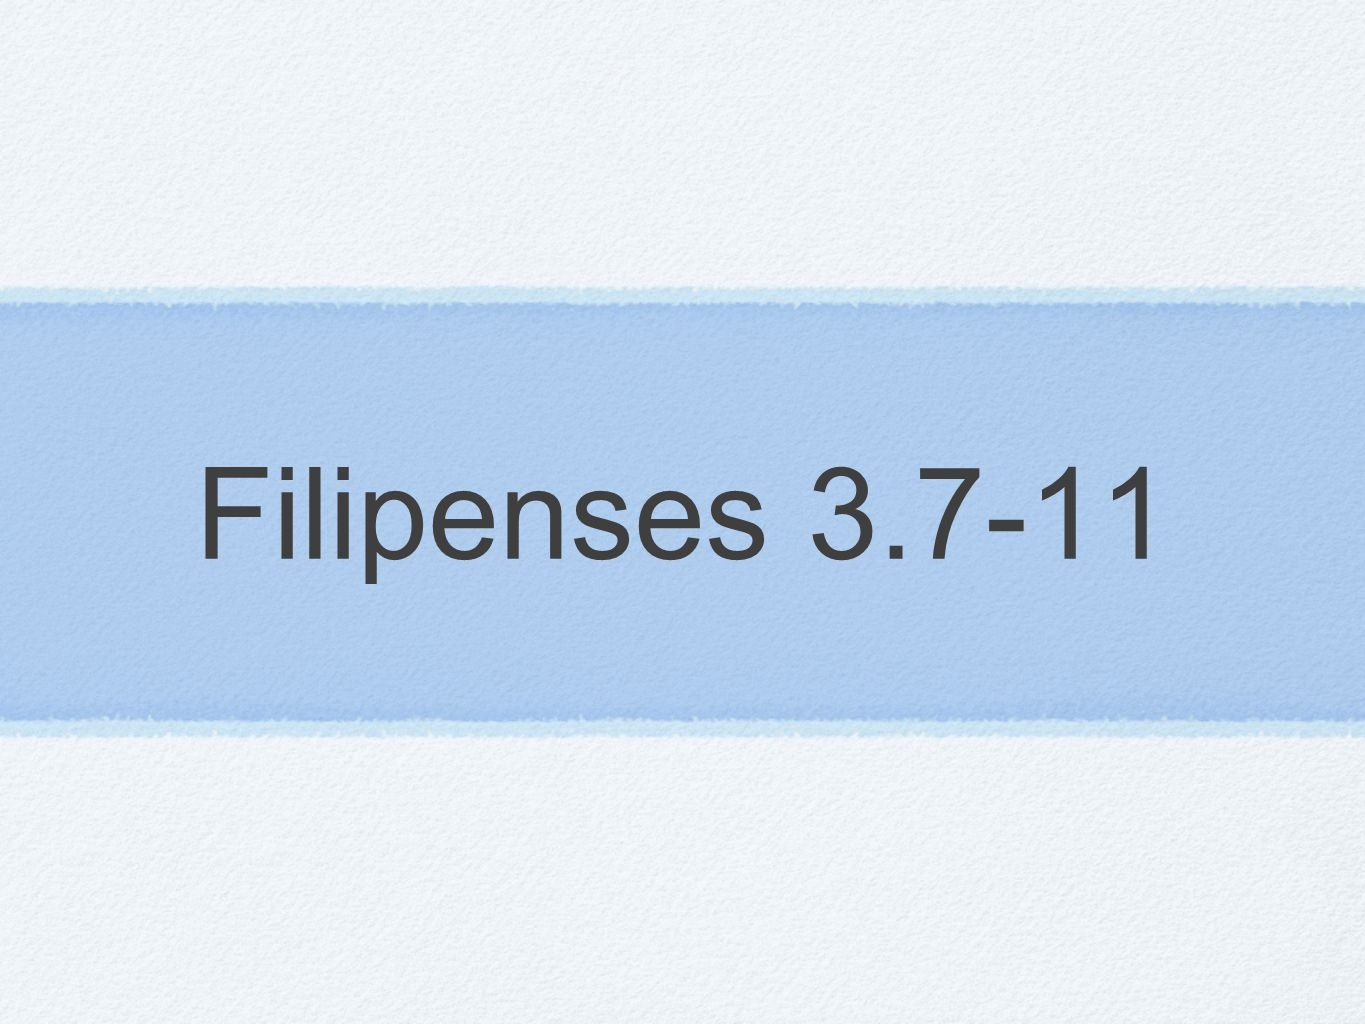 Filipenses 3.7-11